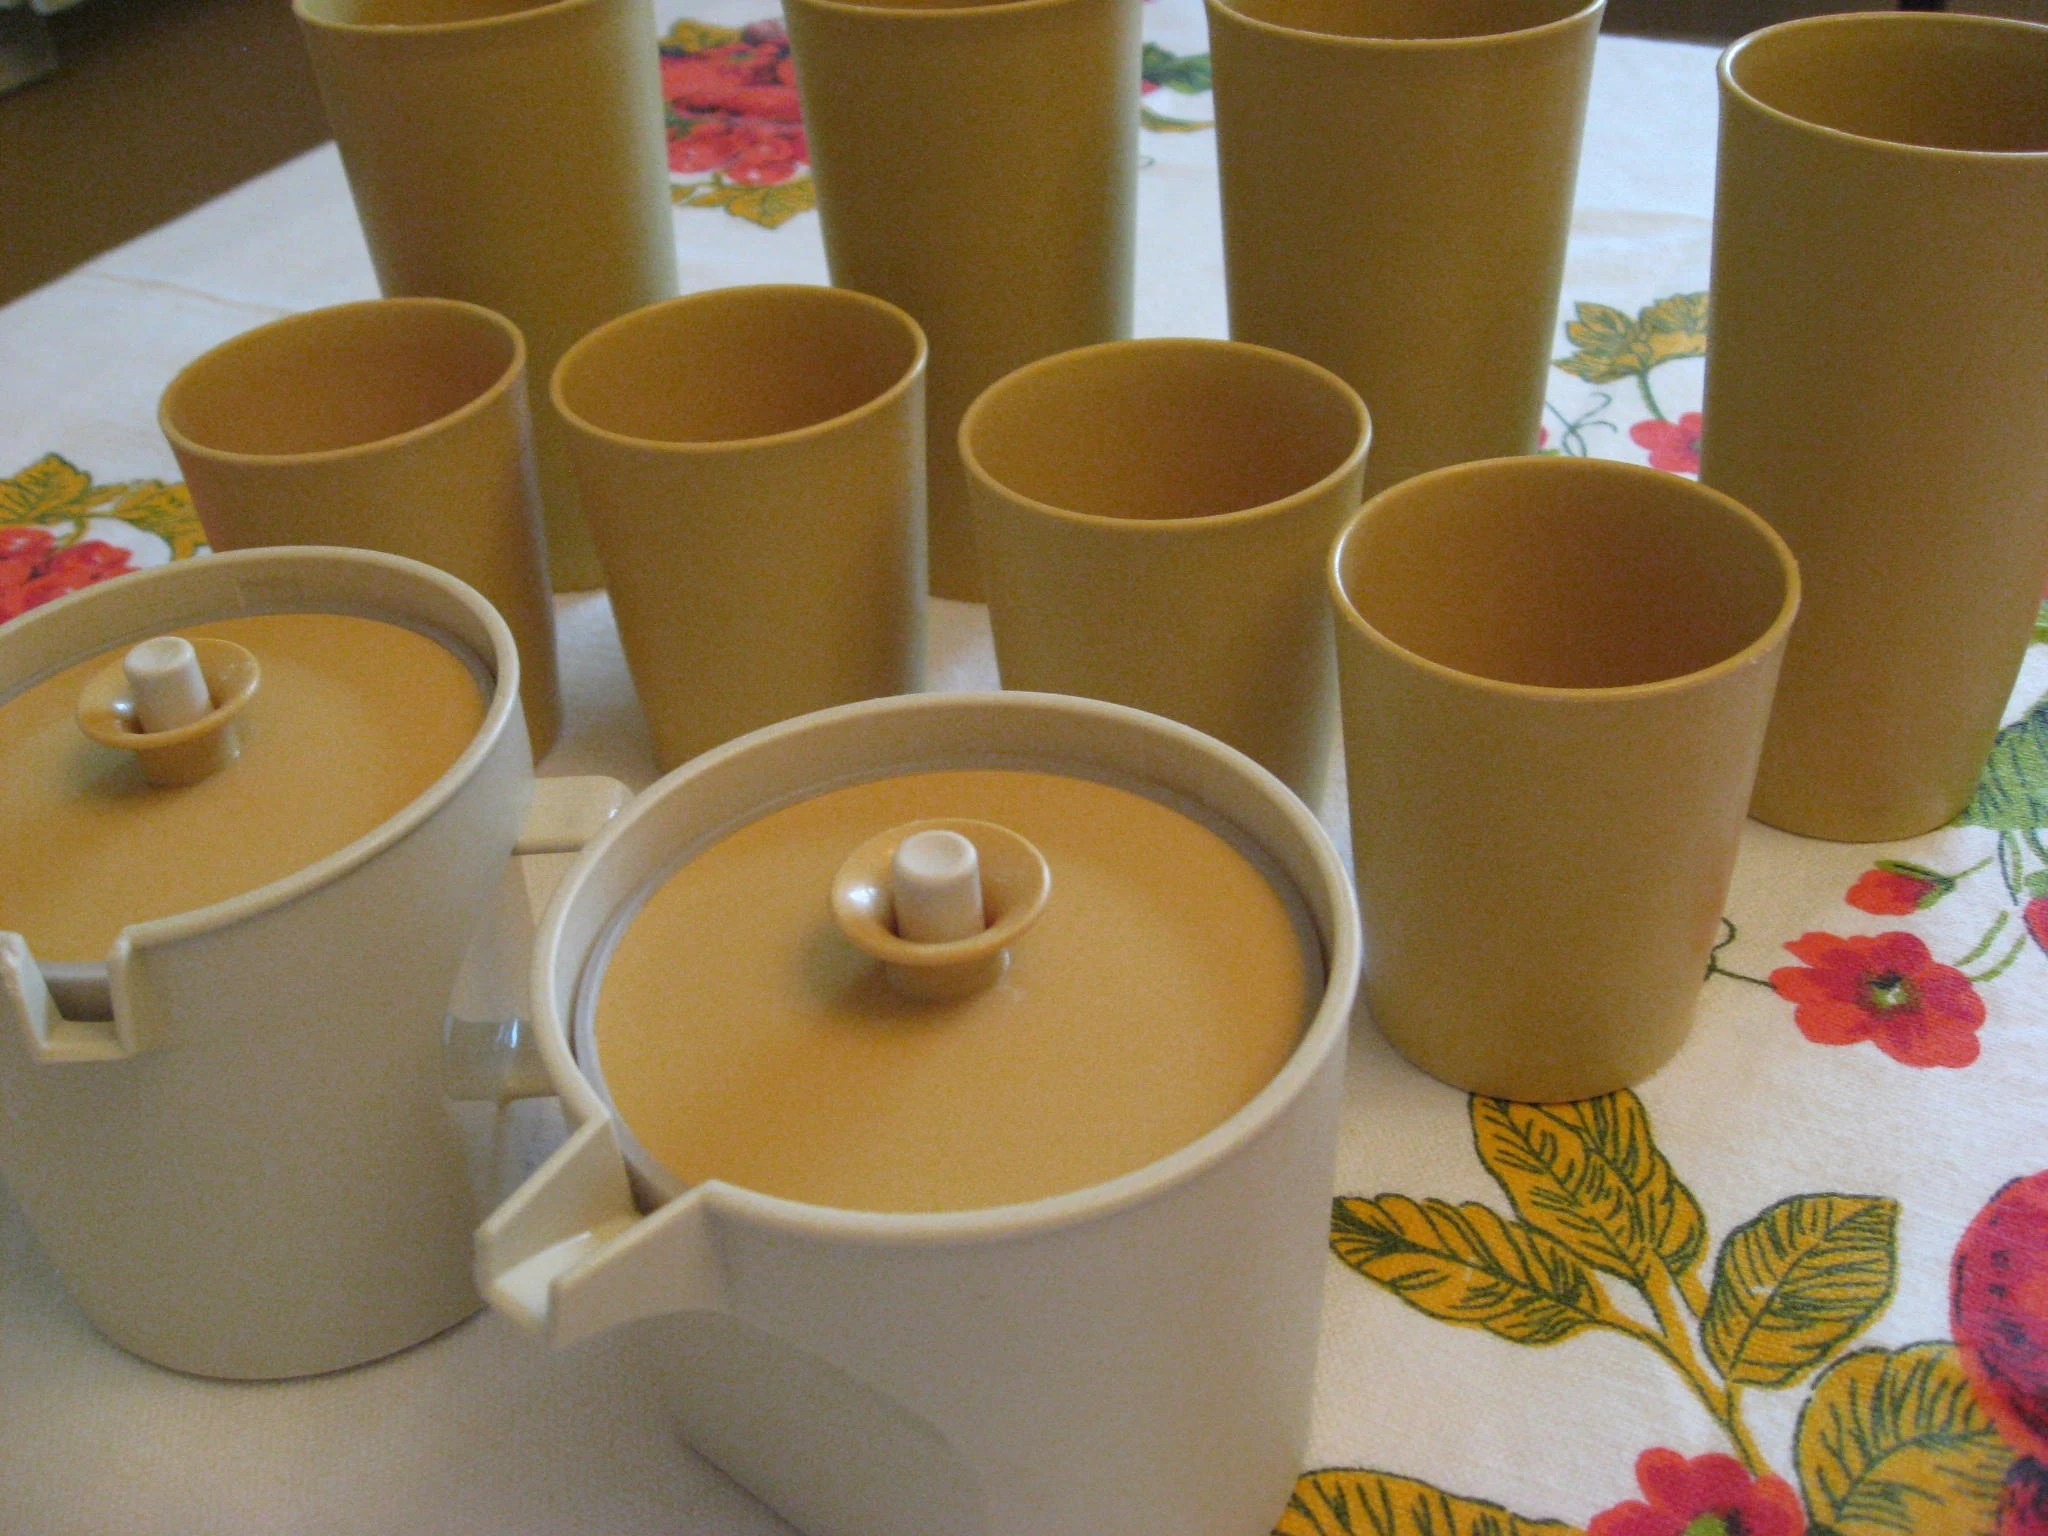 Sale - Lot of Vintage Tupperware - Sugar Creamer Small and Large Tumblers - Harvest Gold